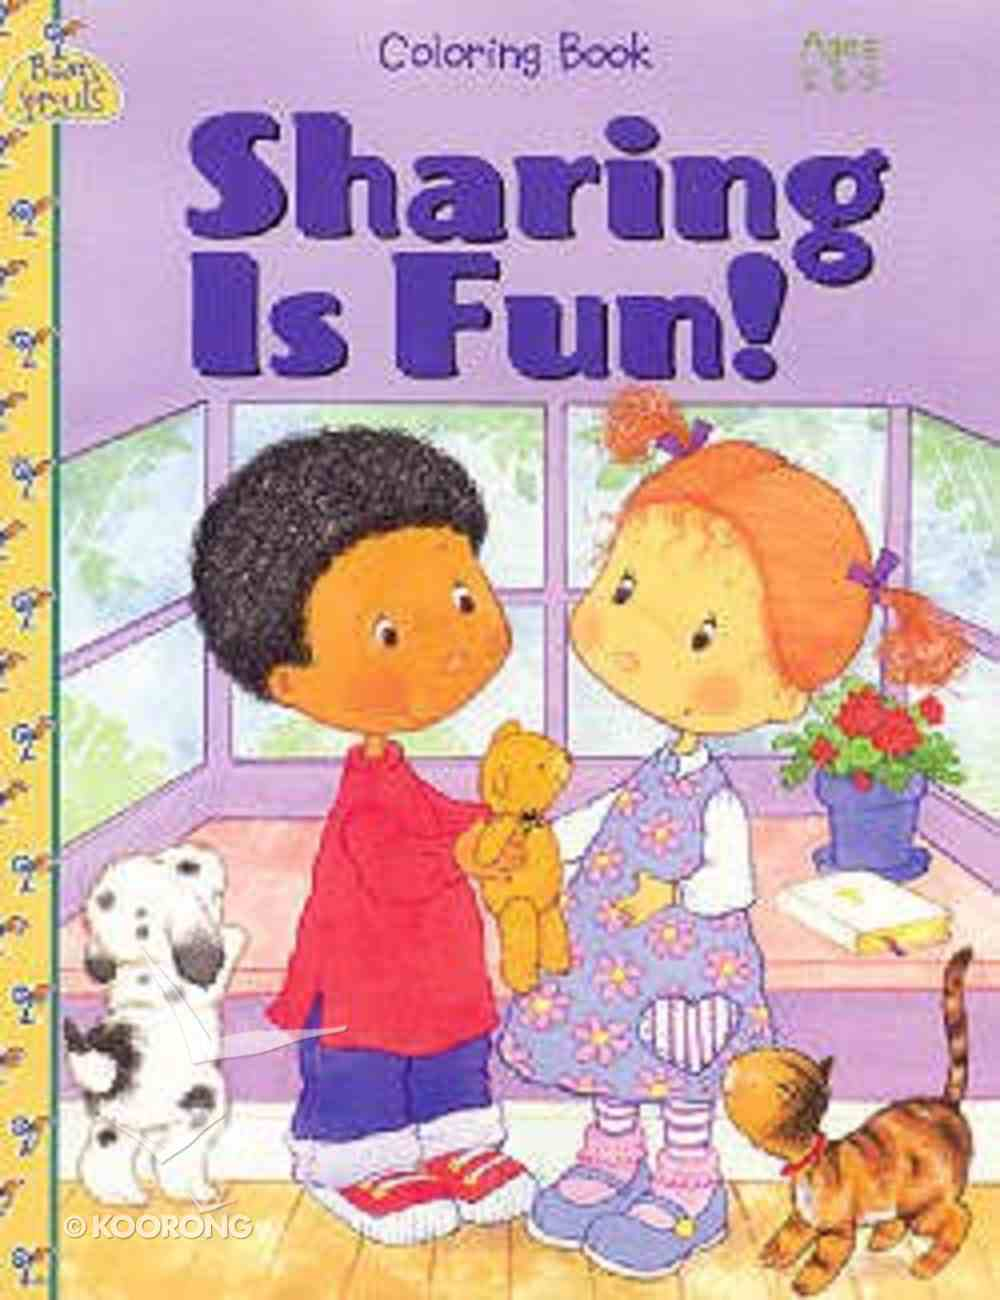 Sharing is Fun! (Colouring Book) Paperback